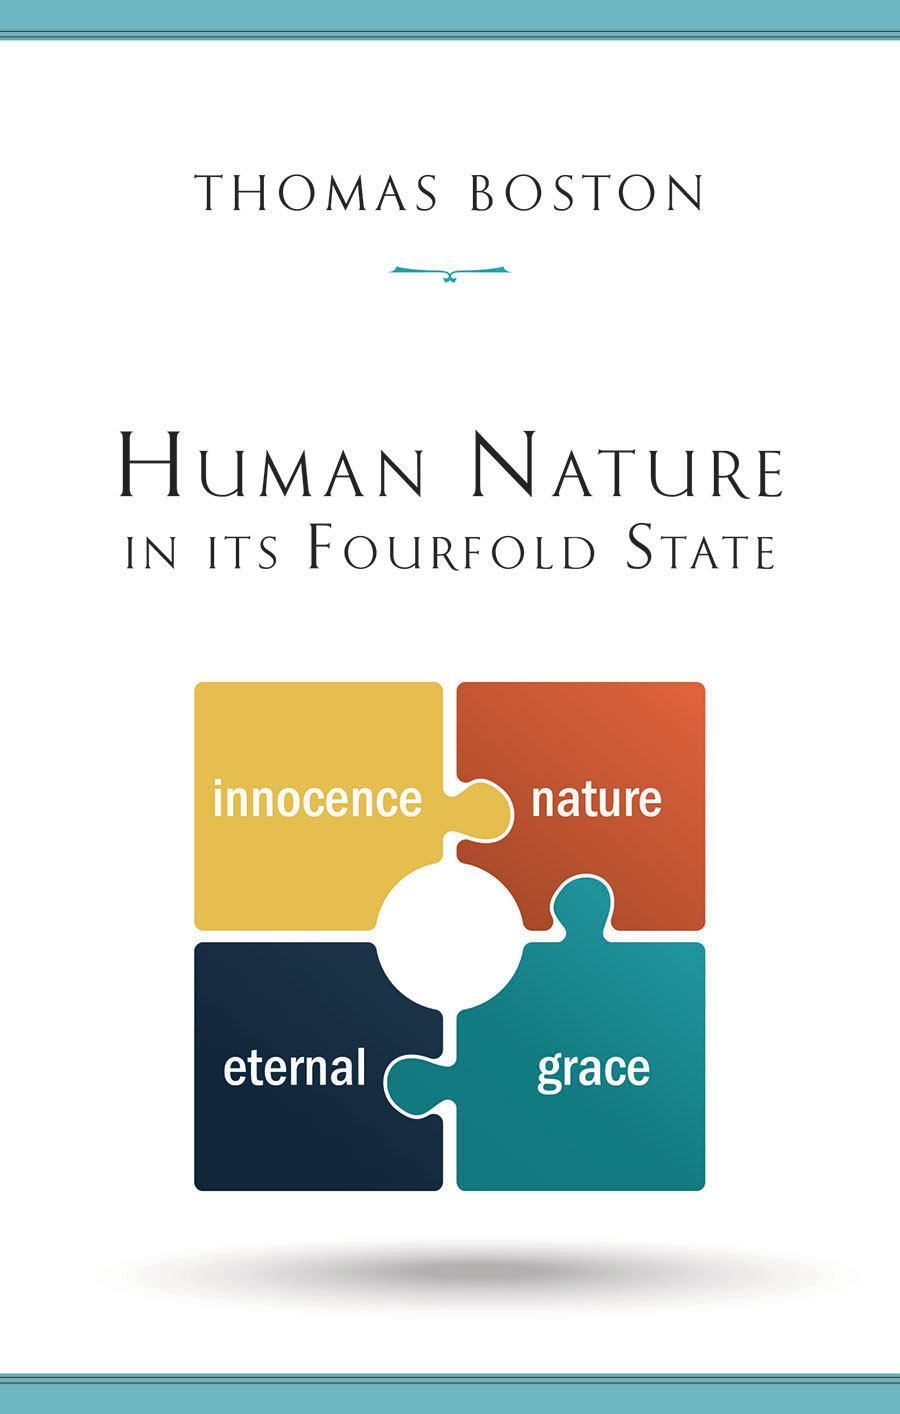 humans in the state of nature Human nature: being scientific humans are constantly sorting the world into categories, predicting how things work, and testing those predictions.